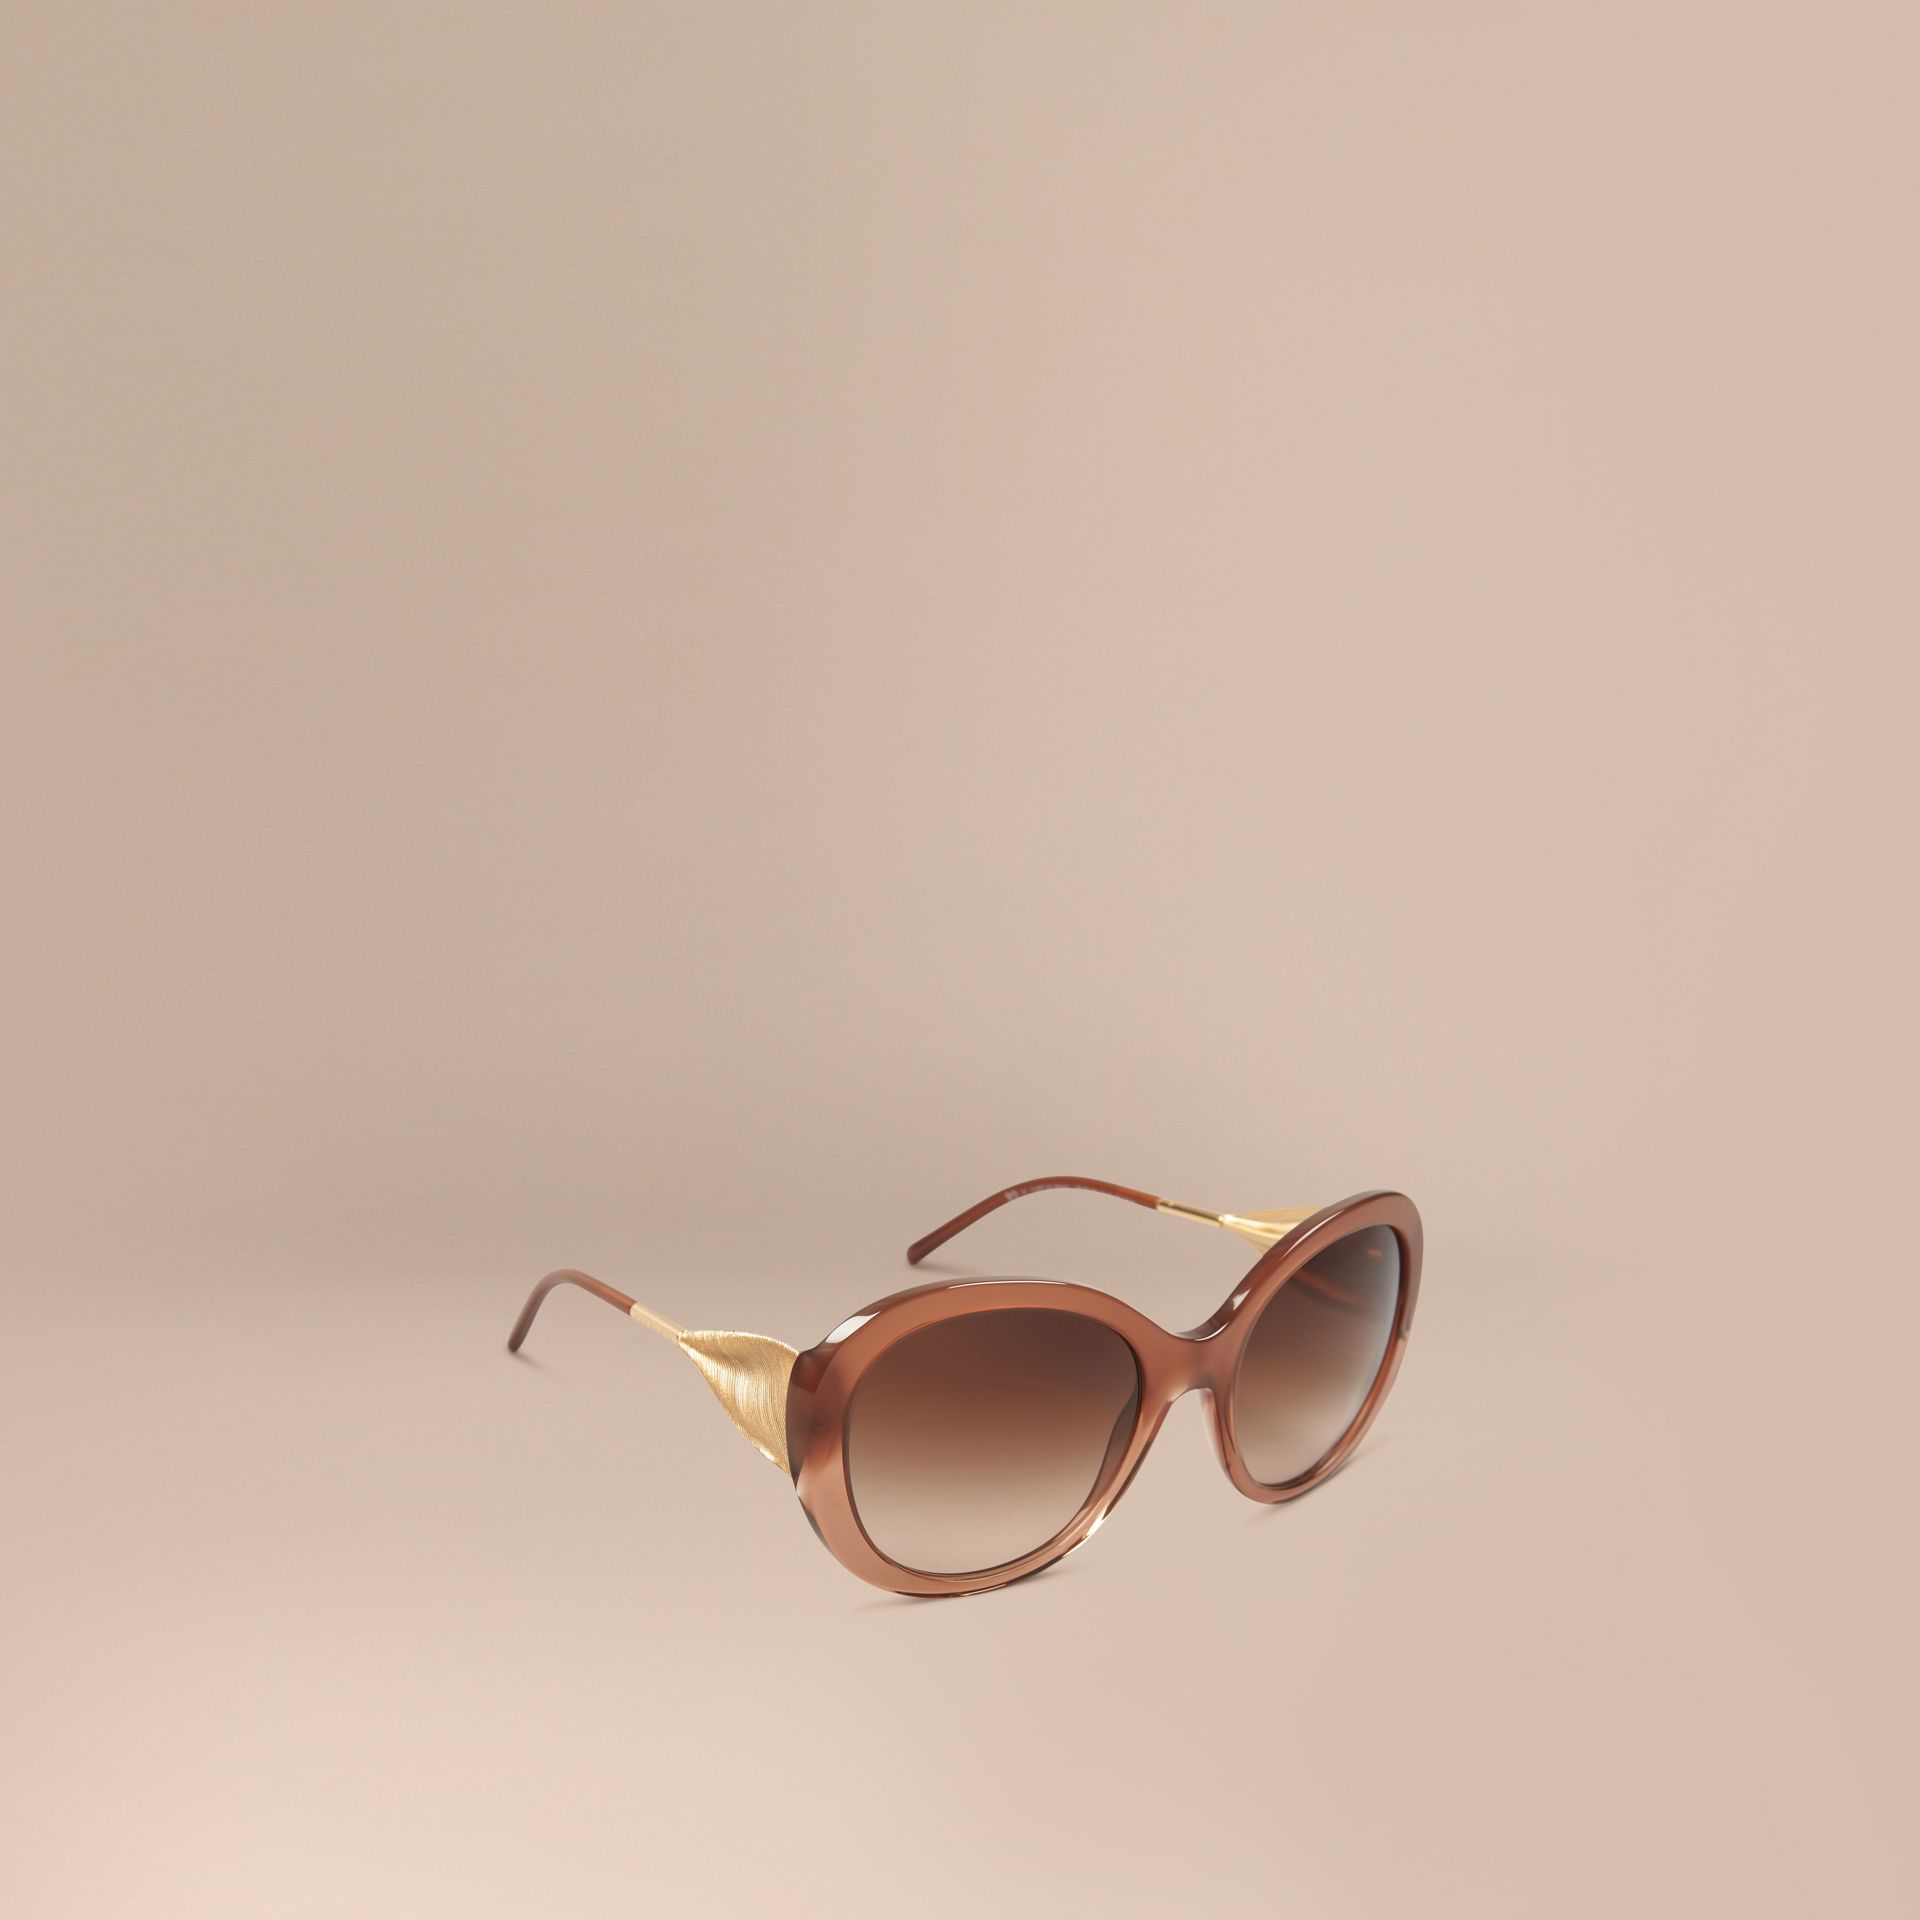 Oversize Round Frame Sunglasses in Fawn Pink - Women | Burberry - gallery image 1